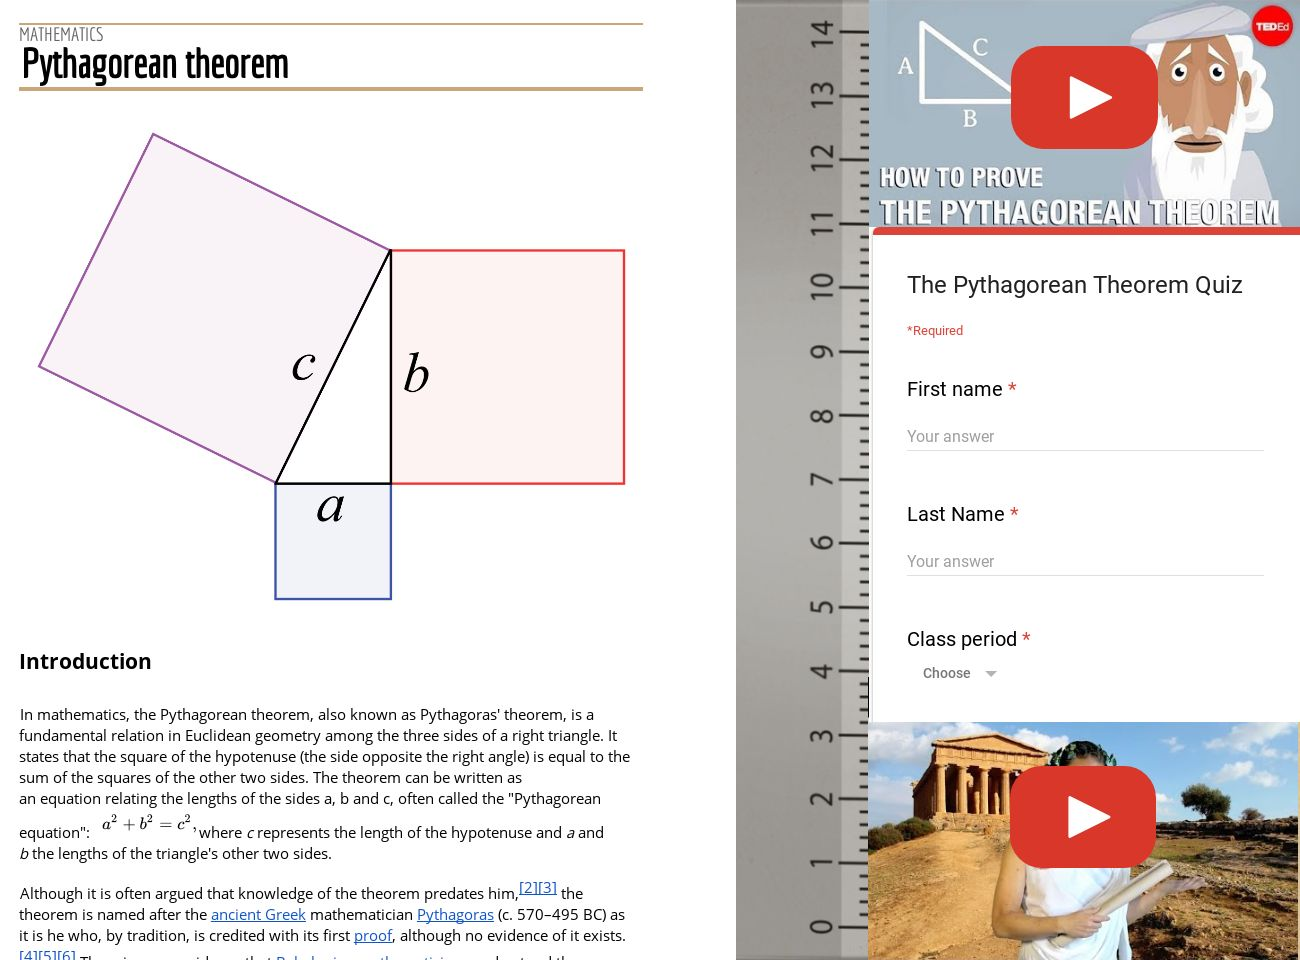 Pythagorean theorem + quiz